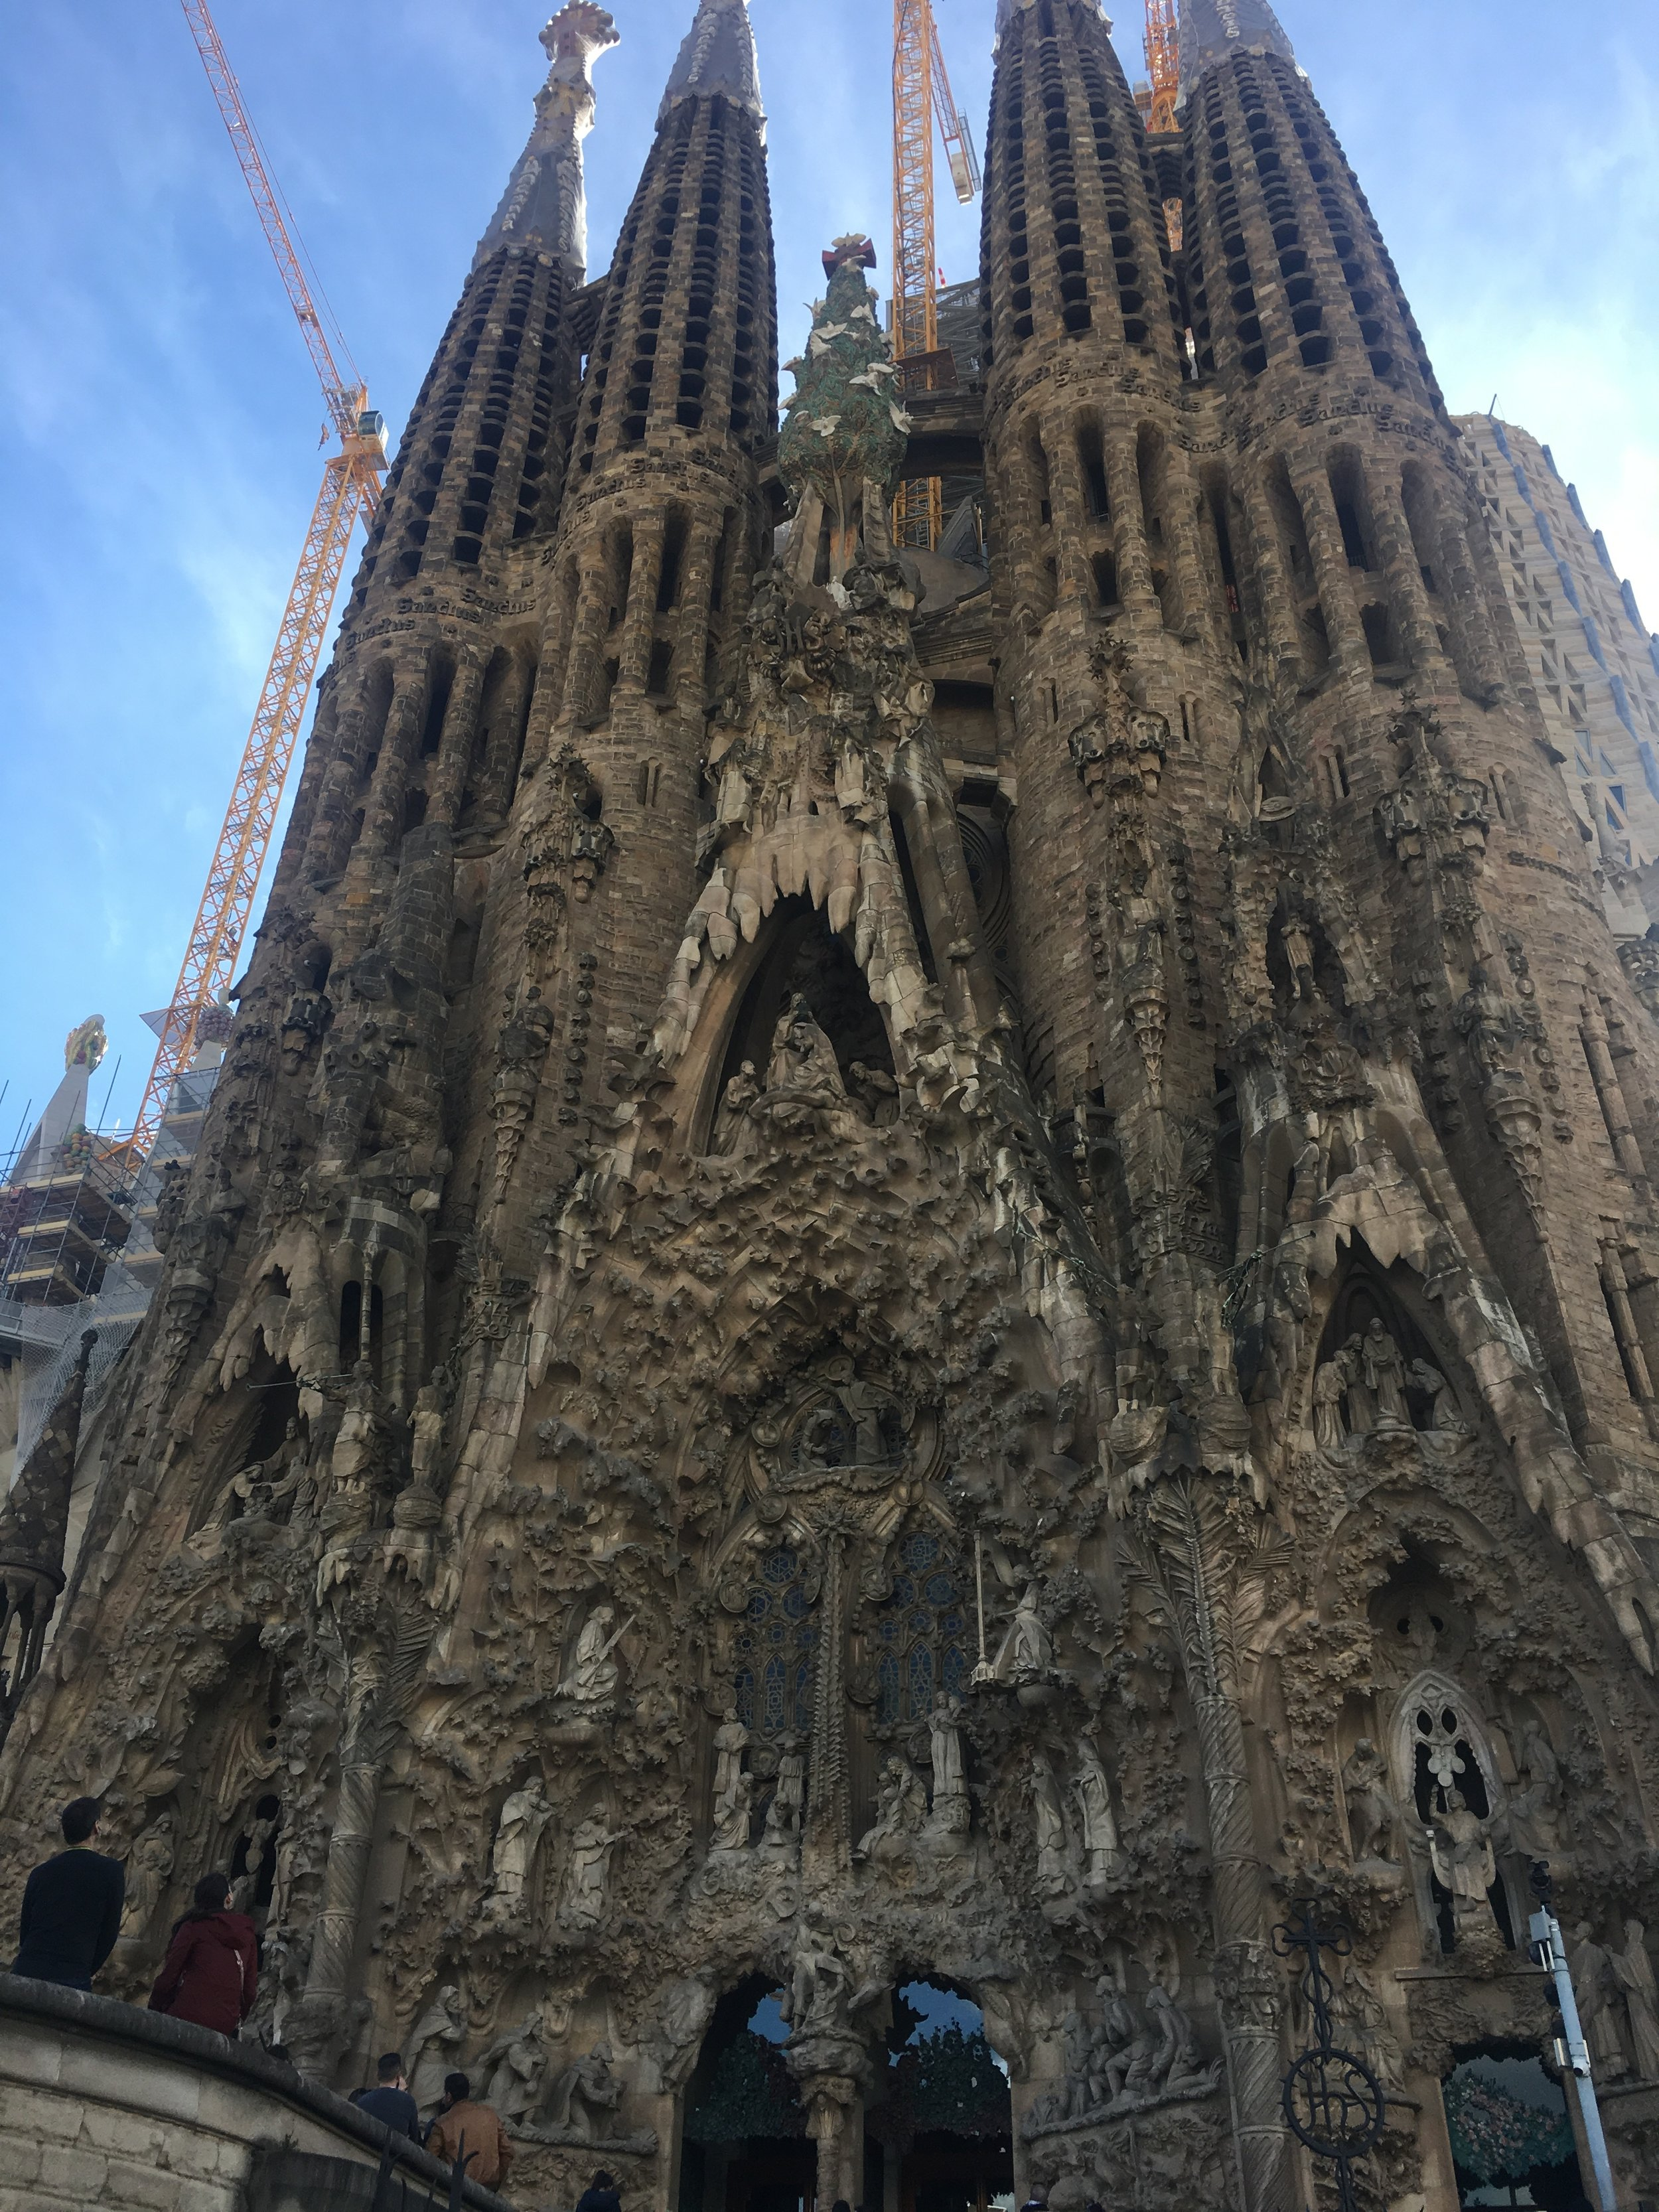 The outside of the Sagrada Familia: Gothic and Somewhat Intimidating. Photo Credit: Mallory Mrozinski, Spring 2018.